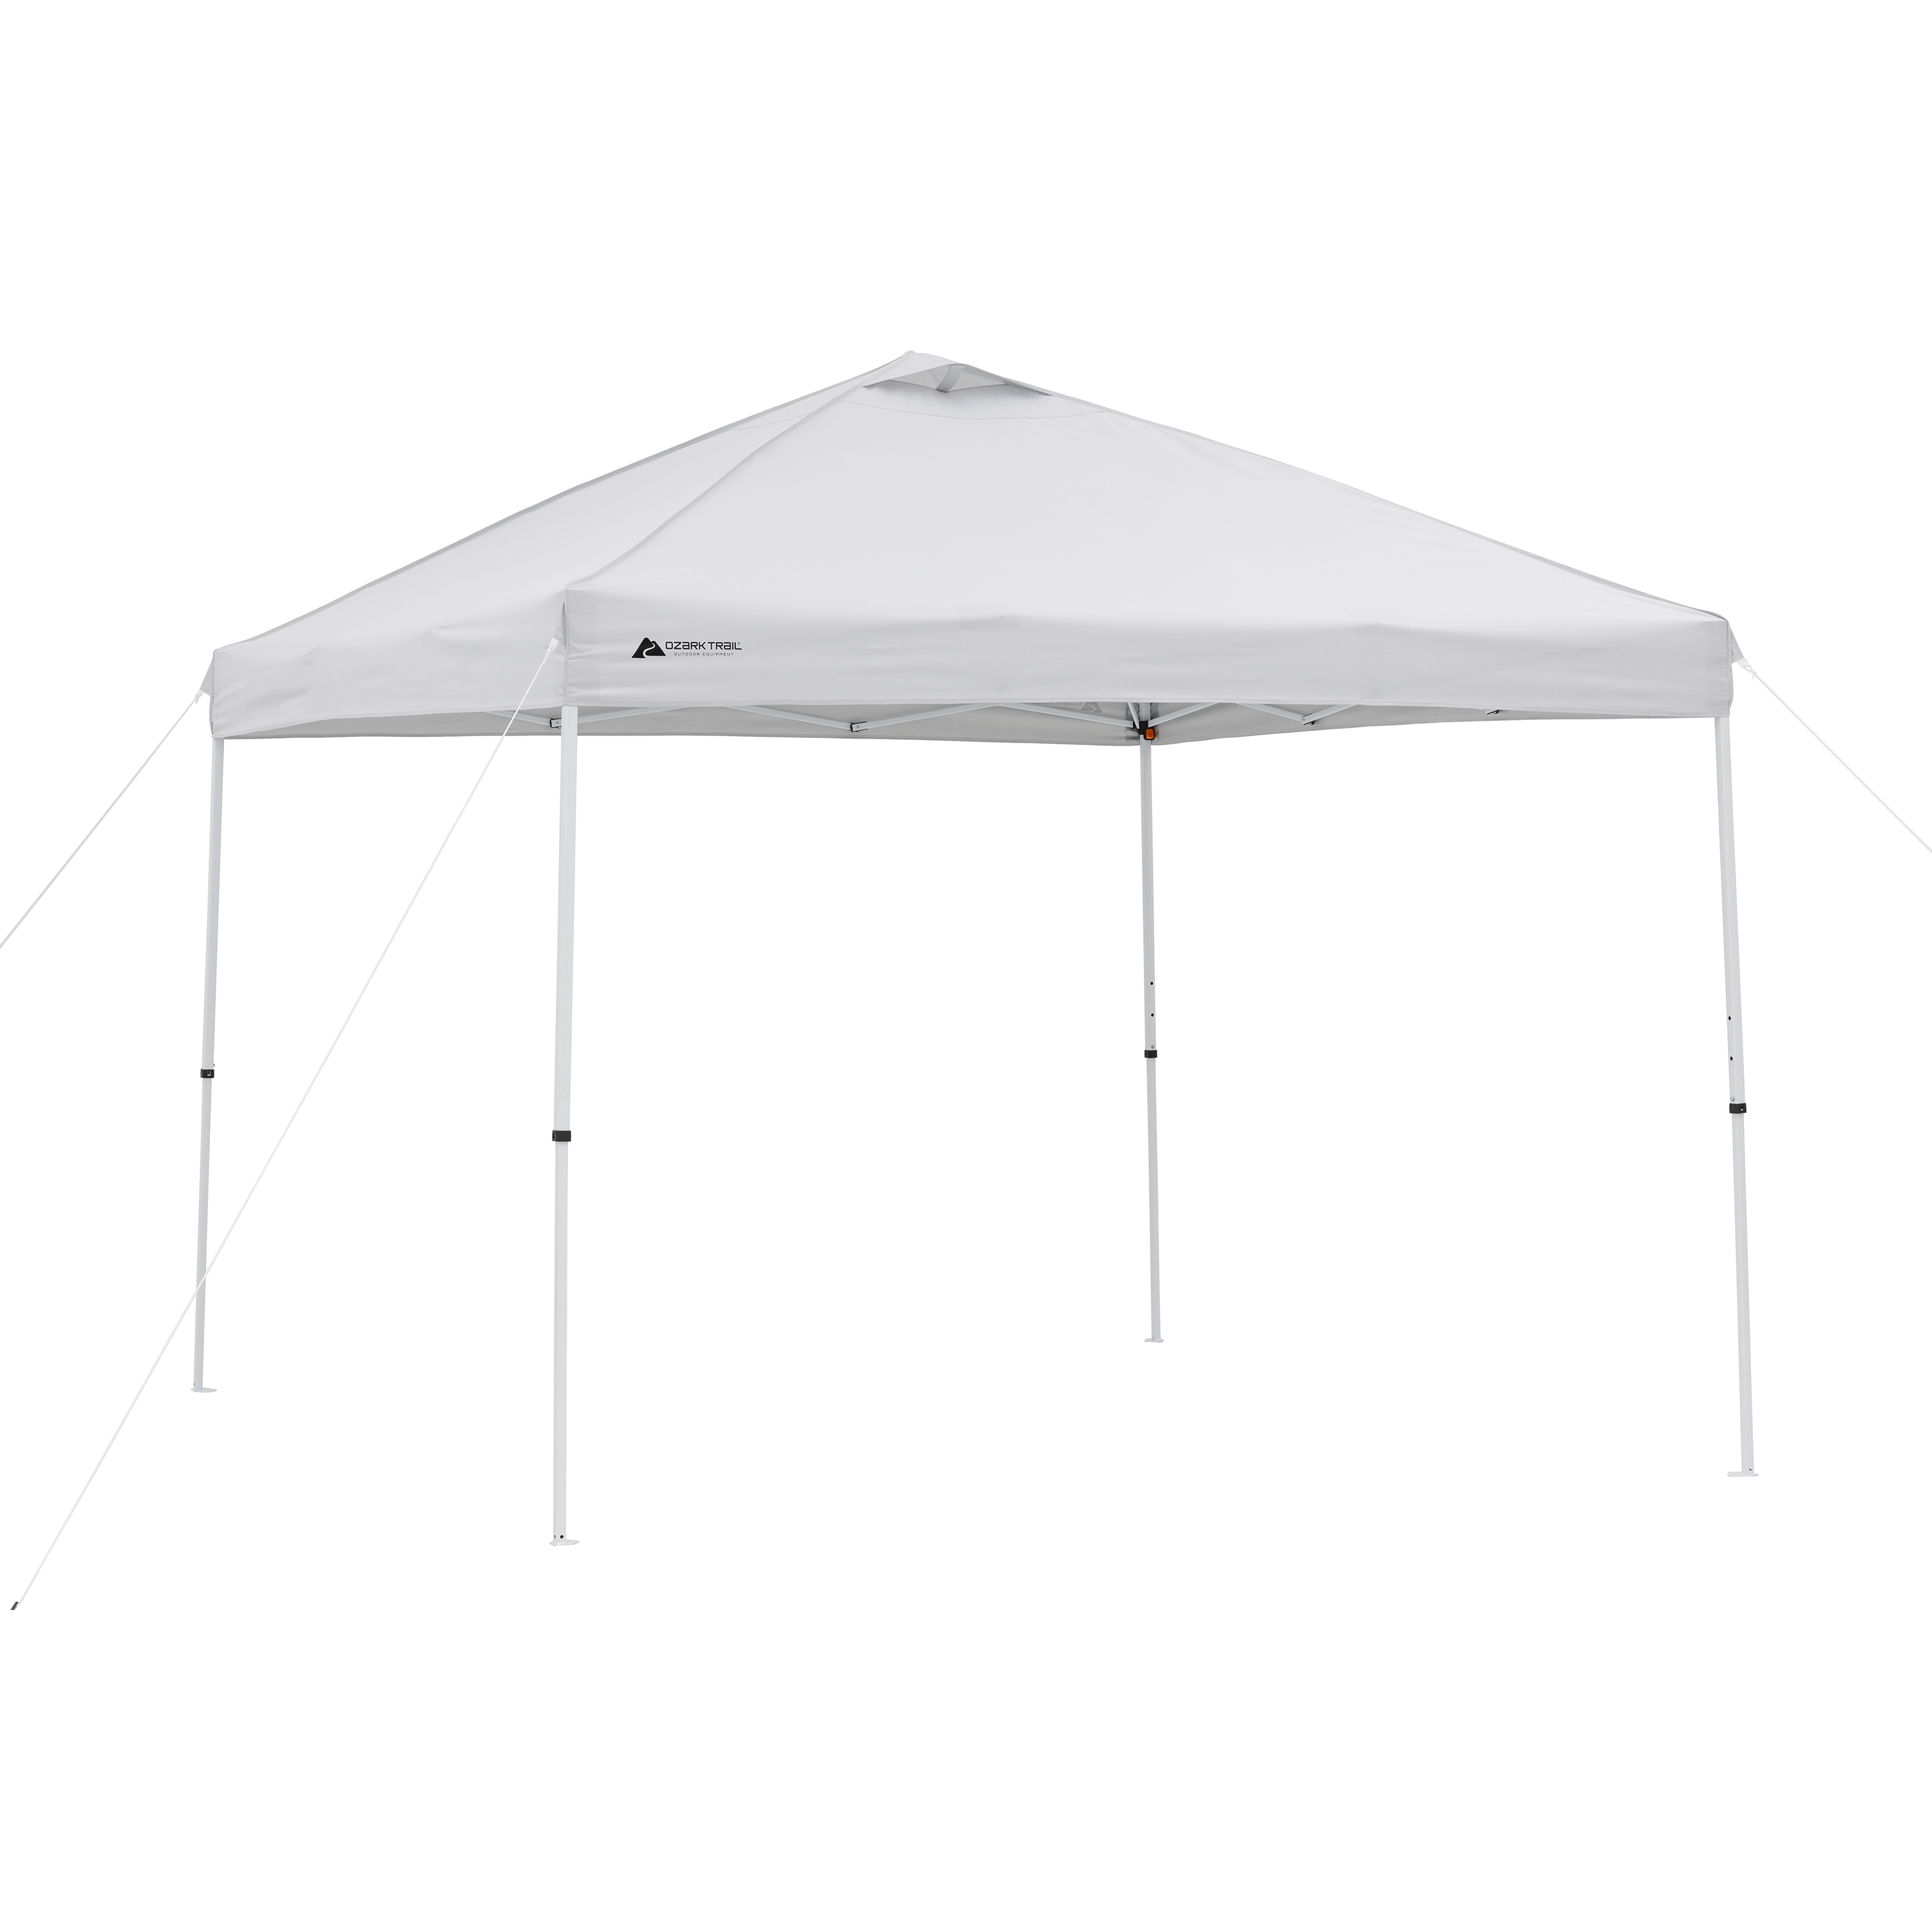 Ozark Trail 10' x 10' Straight Leg Instant Tailgate Canopy